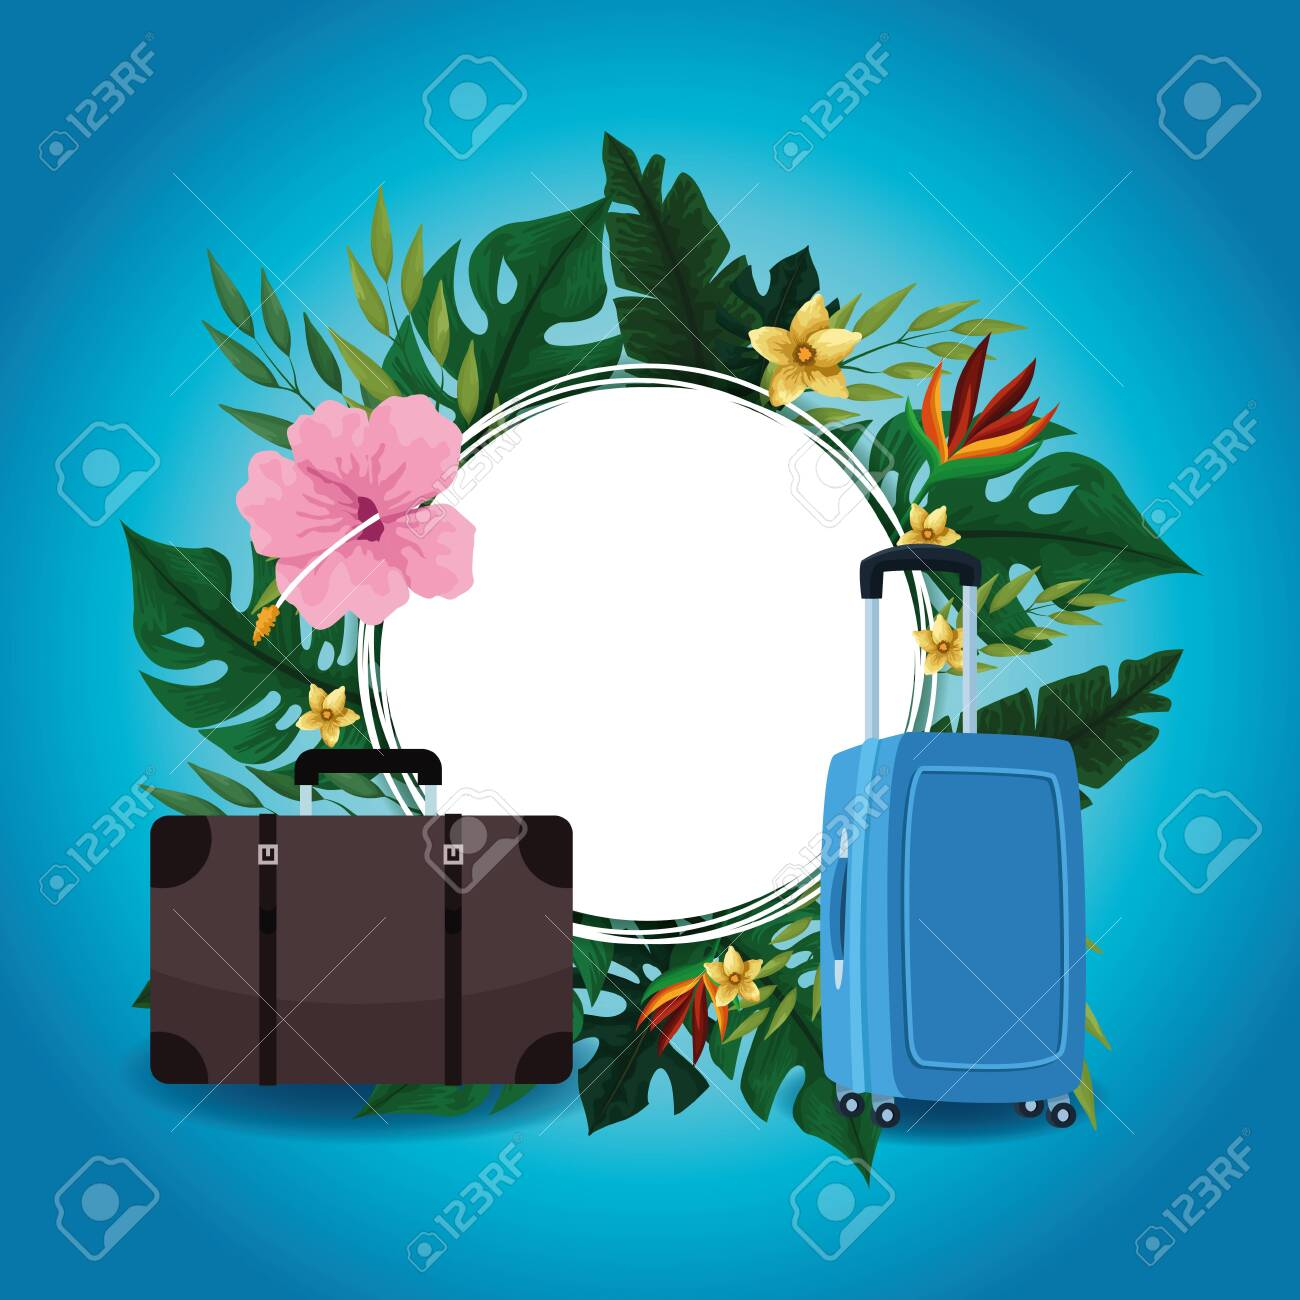 Summer blank round frame with travel cartoons and tropical flowers vector illustration graphic design - 134493232